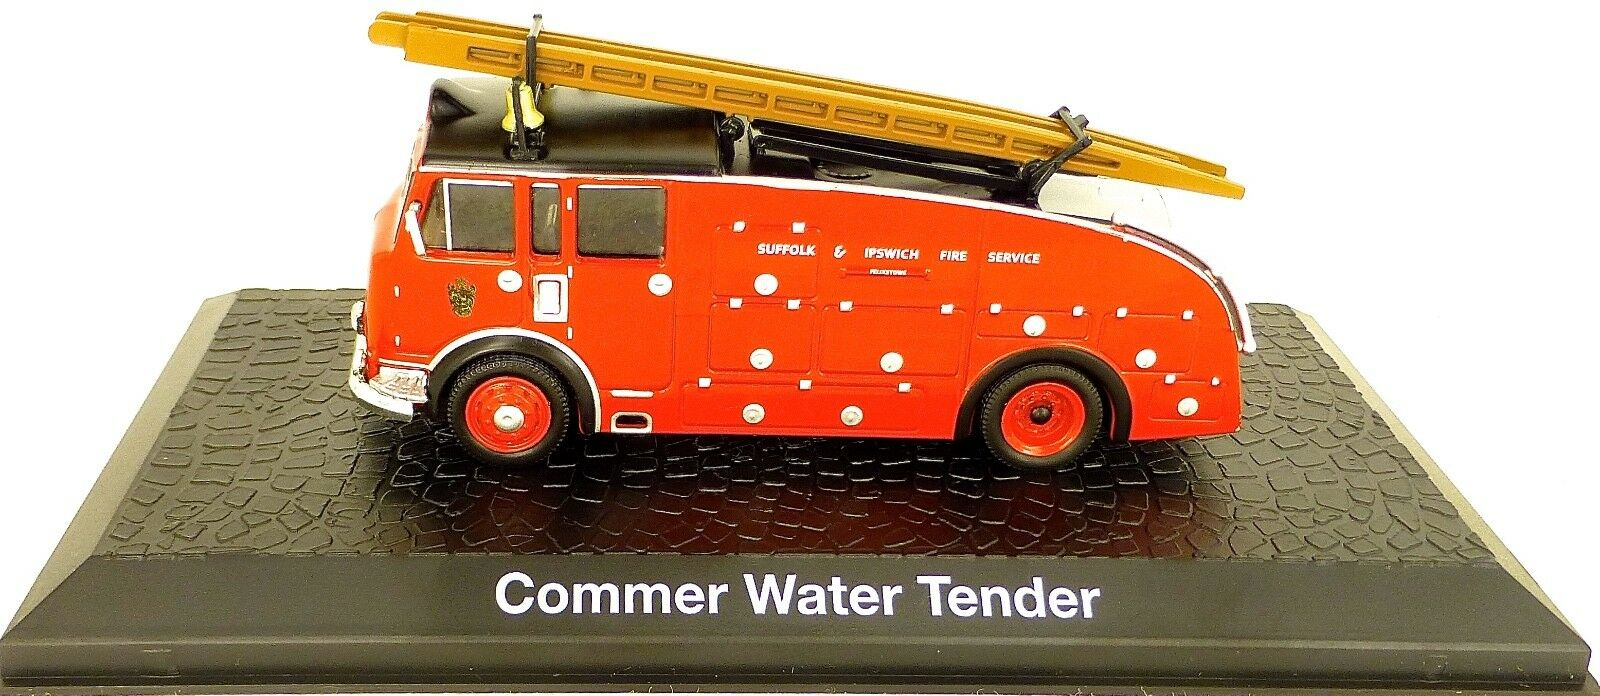 Fire Brigade Commer Water Tender 1 72 Kc1